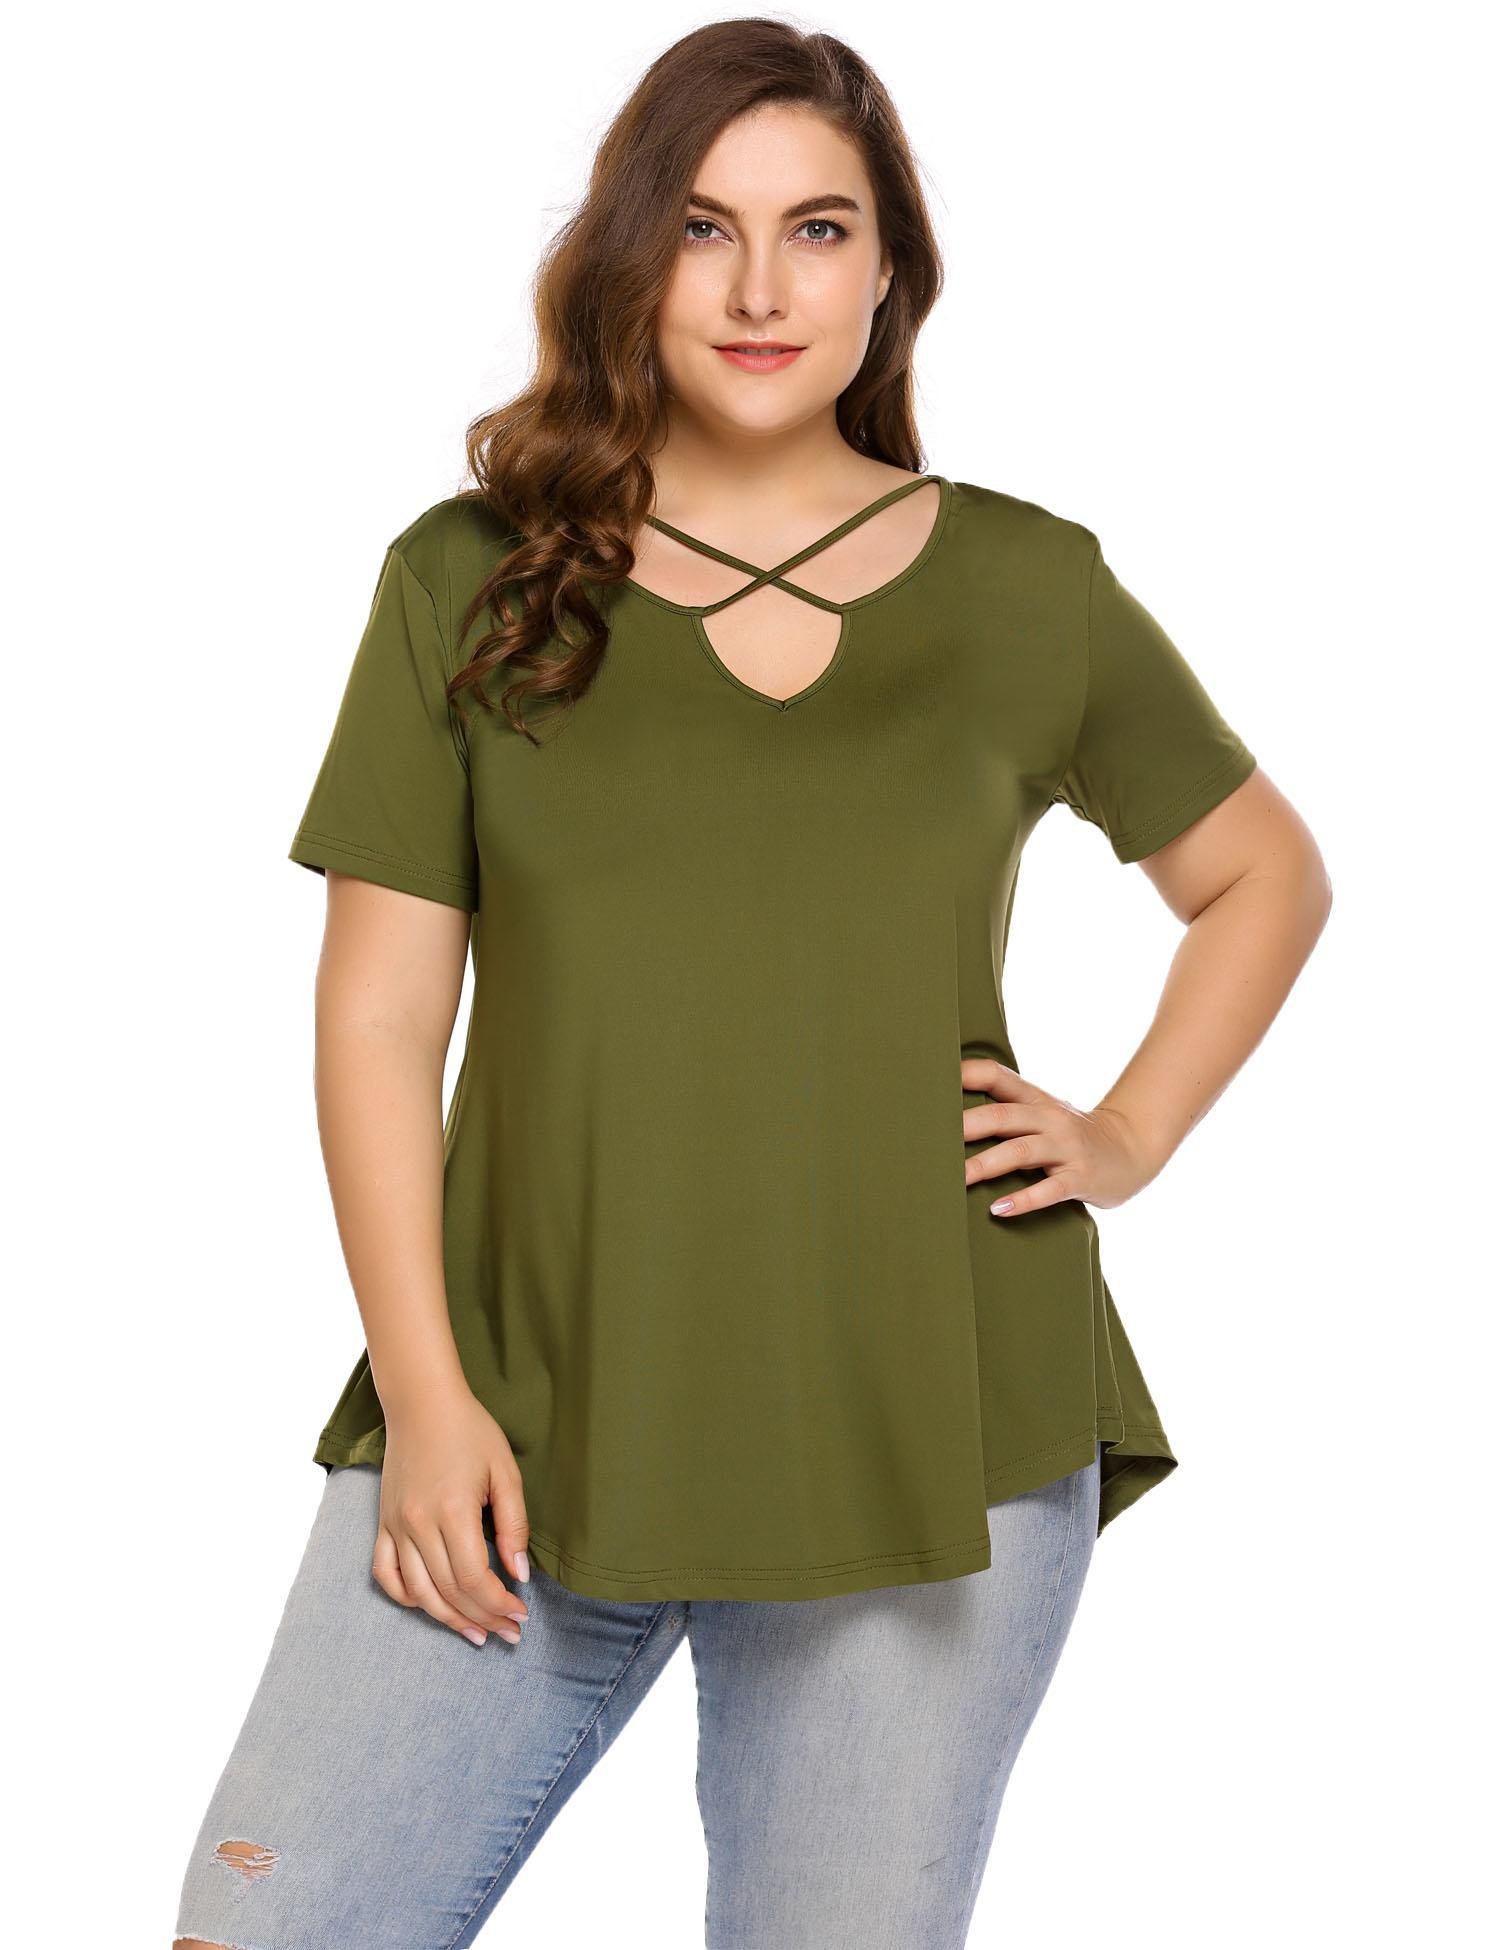 Loveje Women Plus Size Tunic Tops Short Sleeve Cross V Neck Casual T-Shirt Tops, Army Green, XX-Large